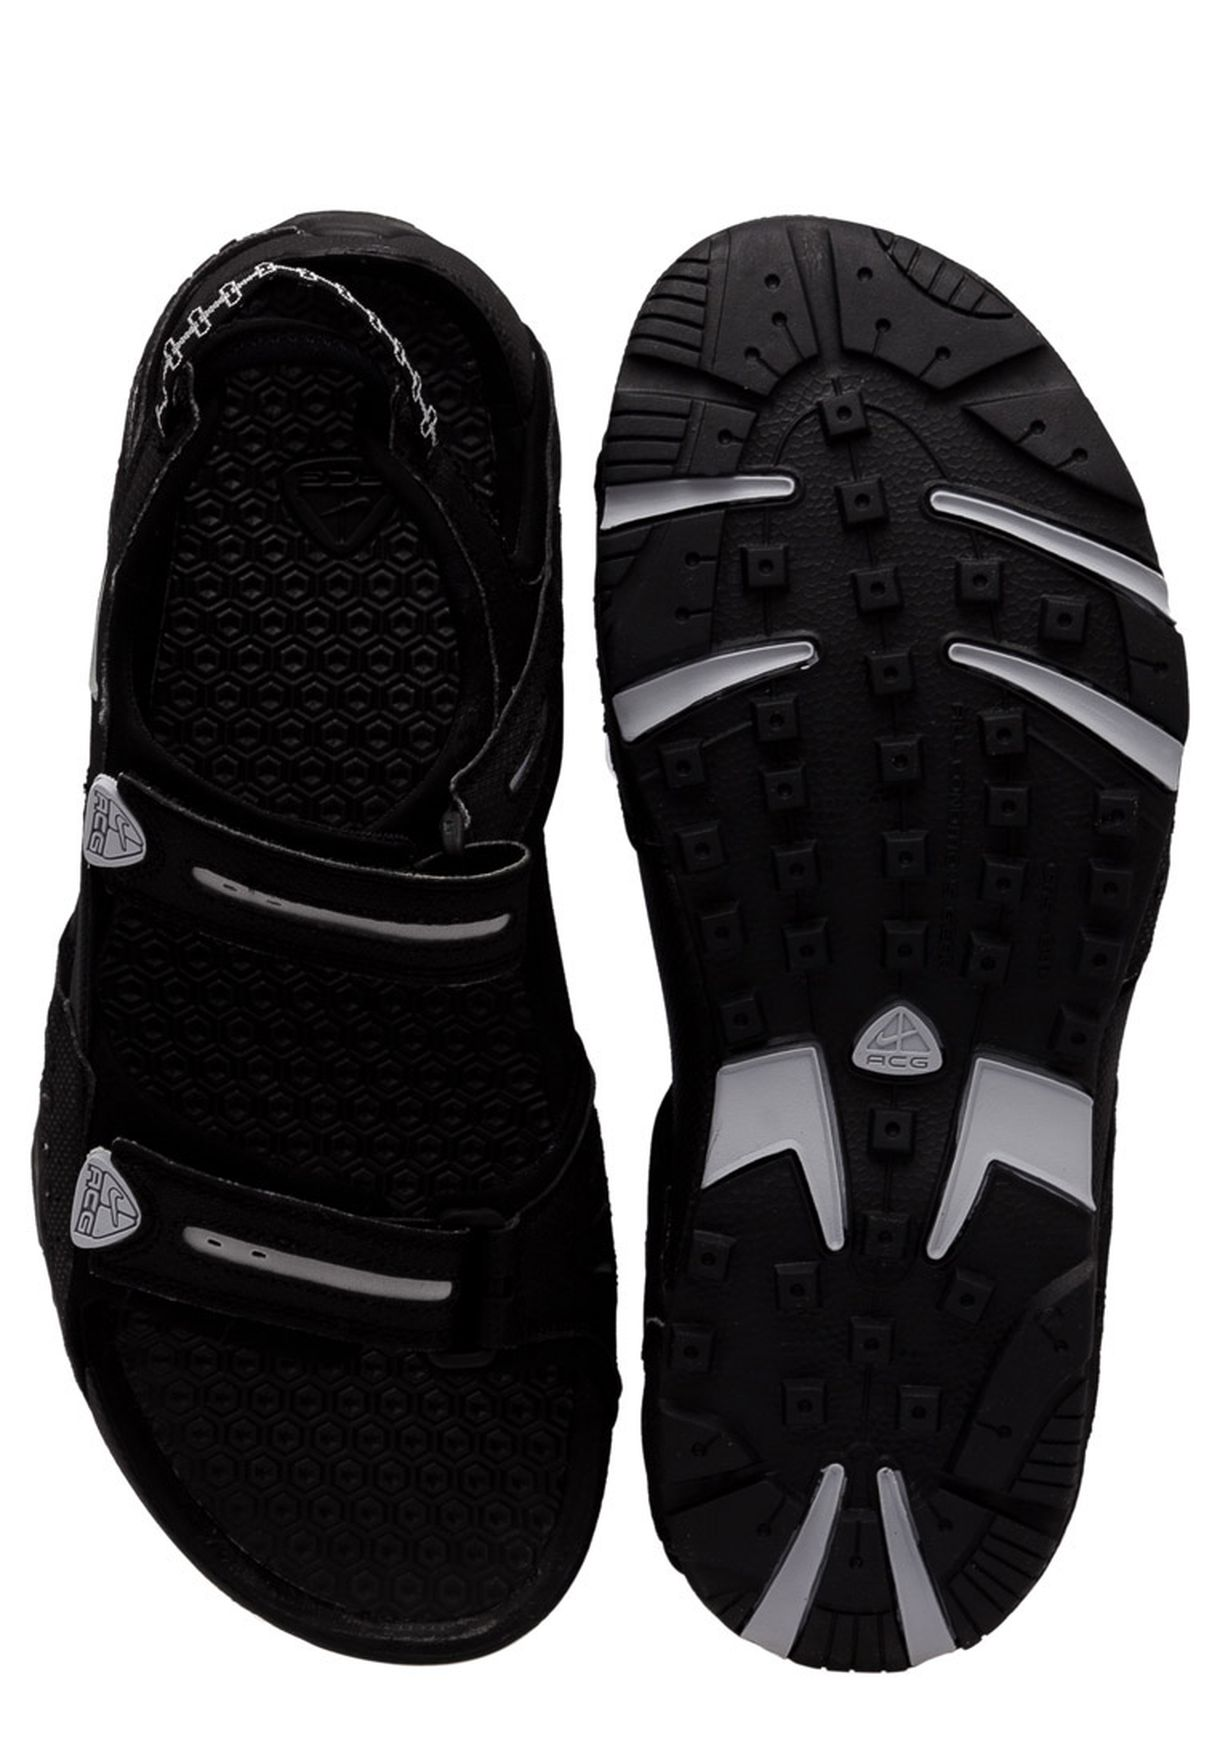 7fa5b11dc2ce Shop Nike black Santiam 4 Sandal 312839-002 for Men in Bahrain ...